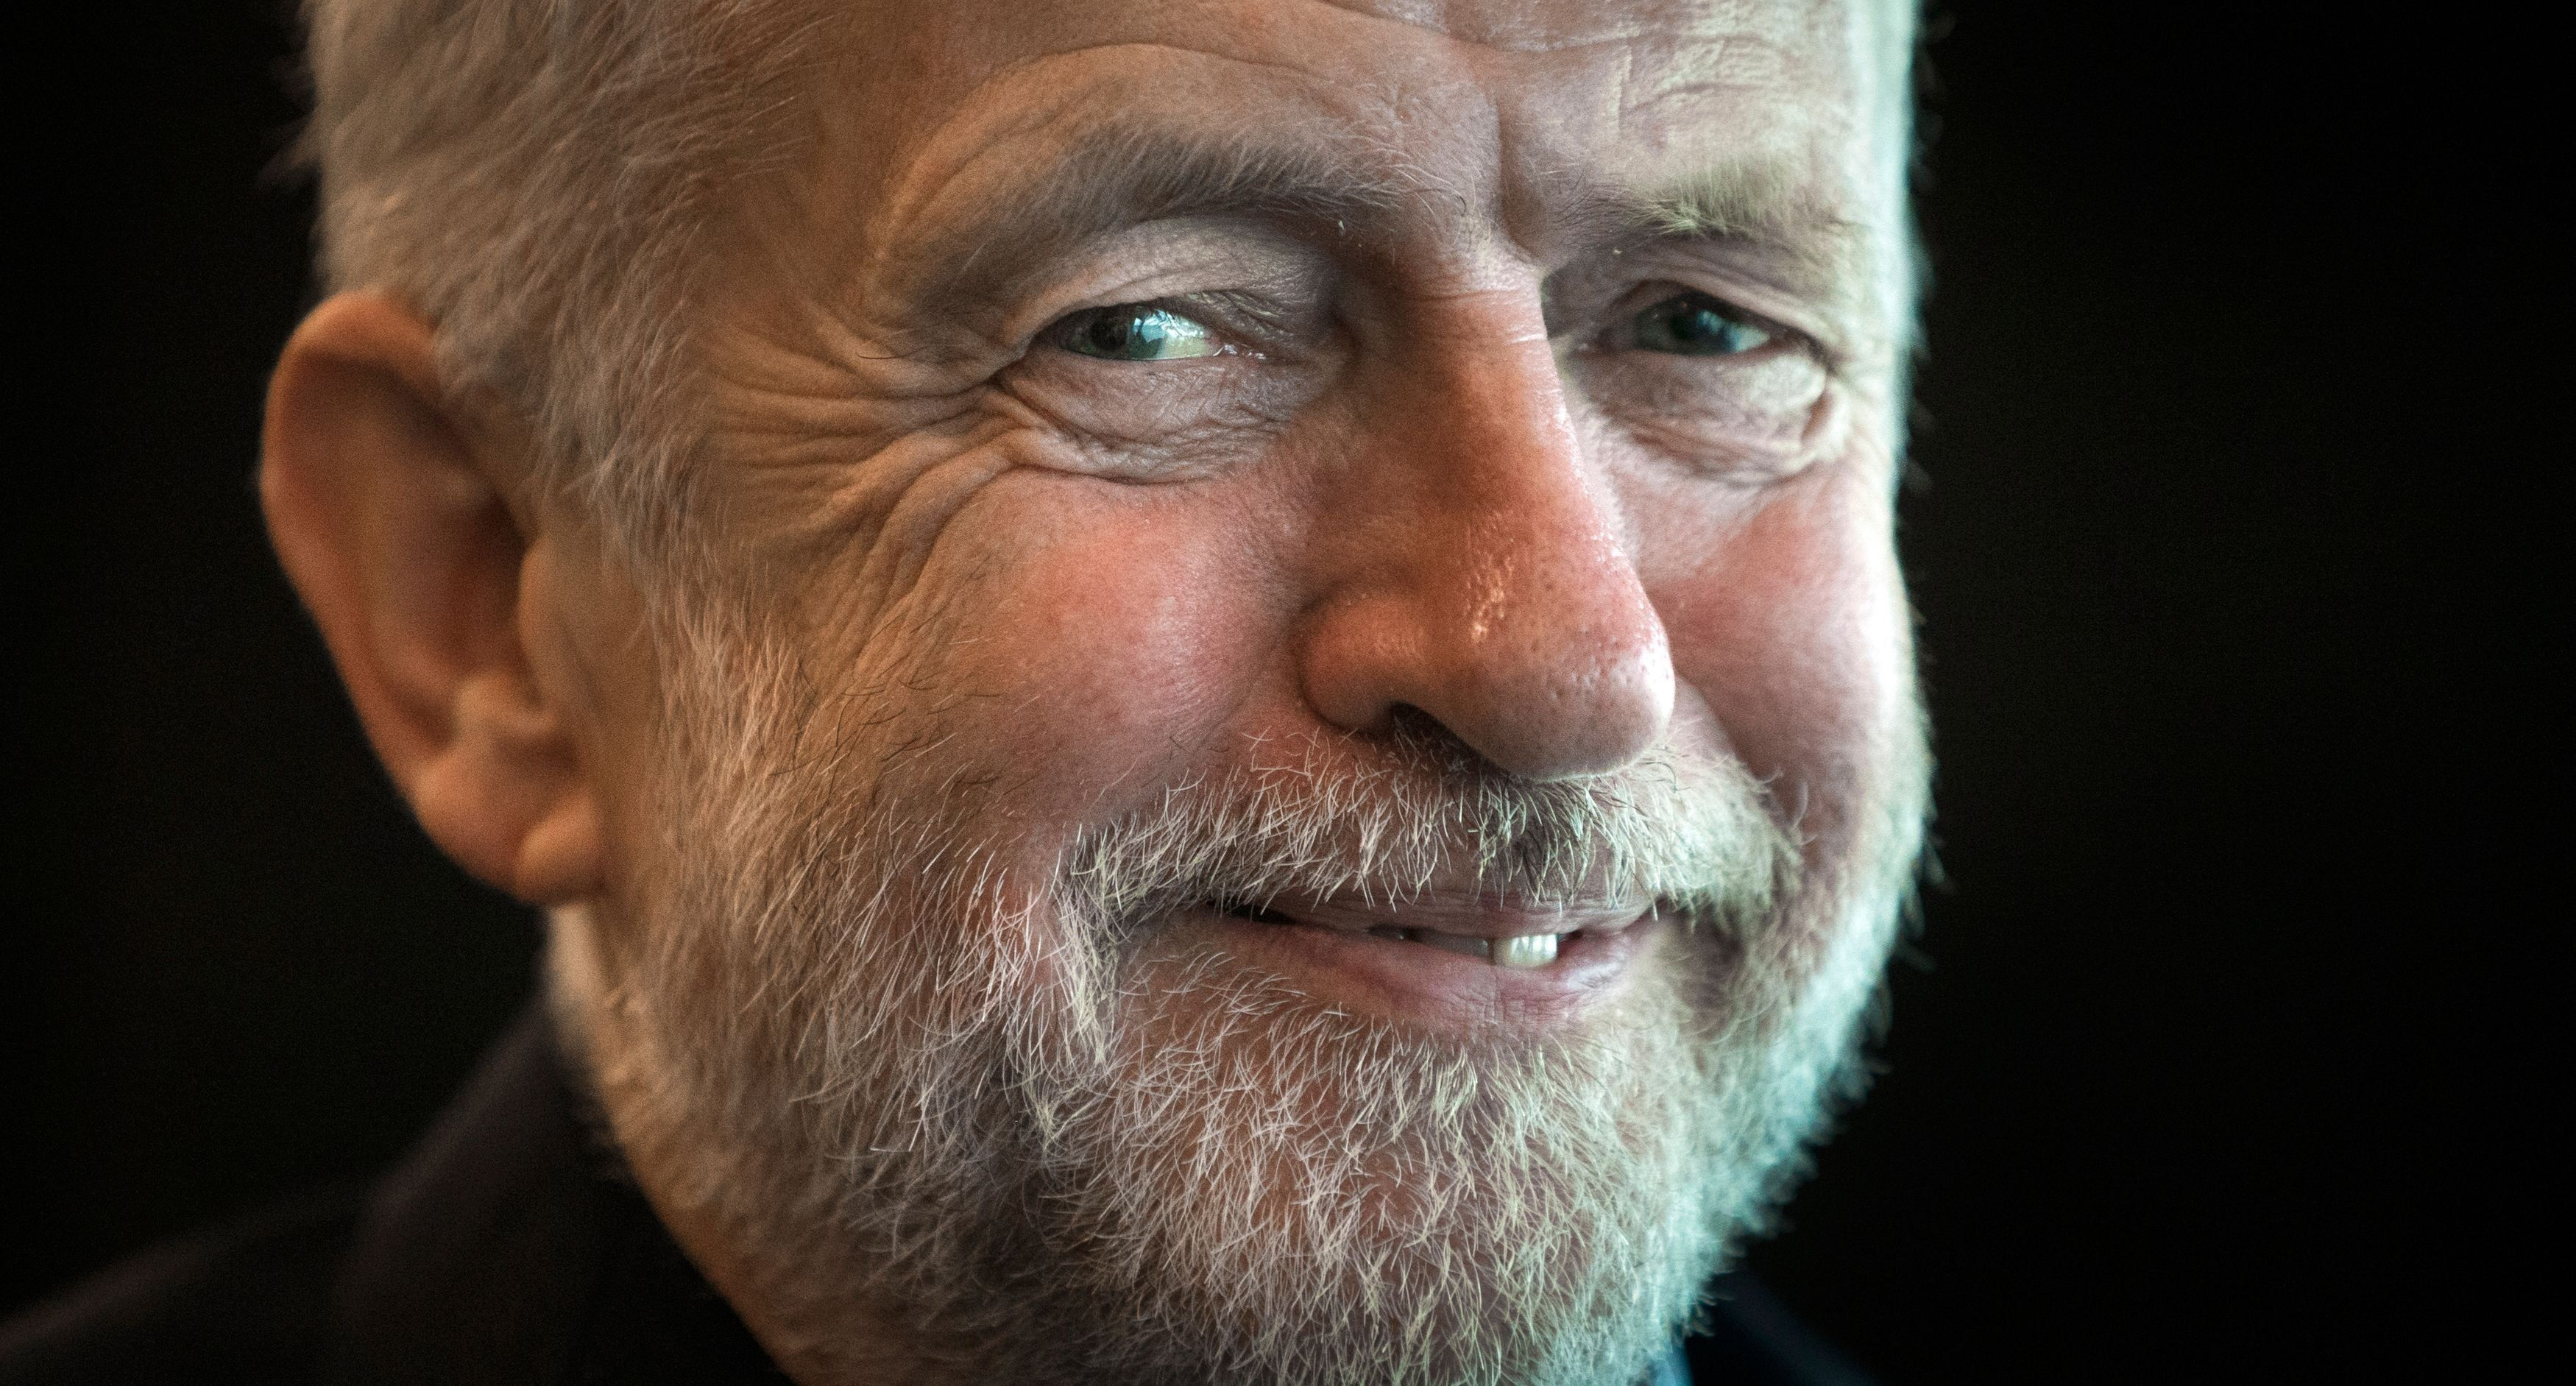 There's A Mashup Video Of Jeremy Corbyn Singing 'Another One Bites The Dust' And It's